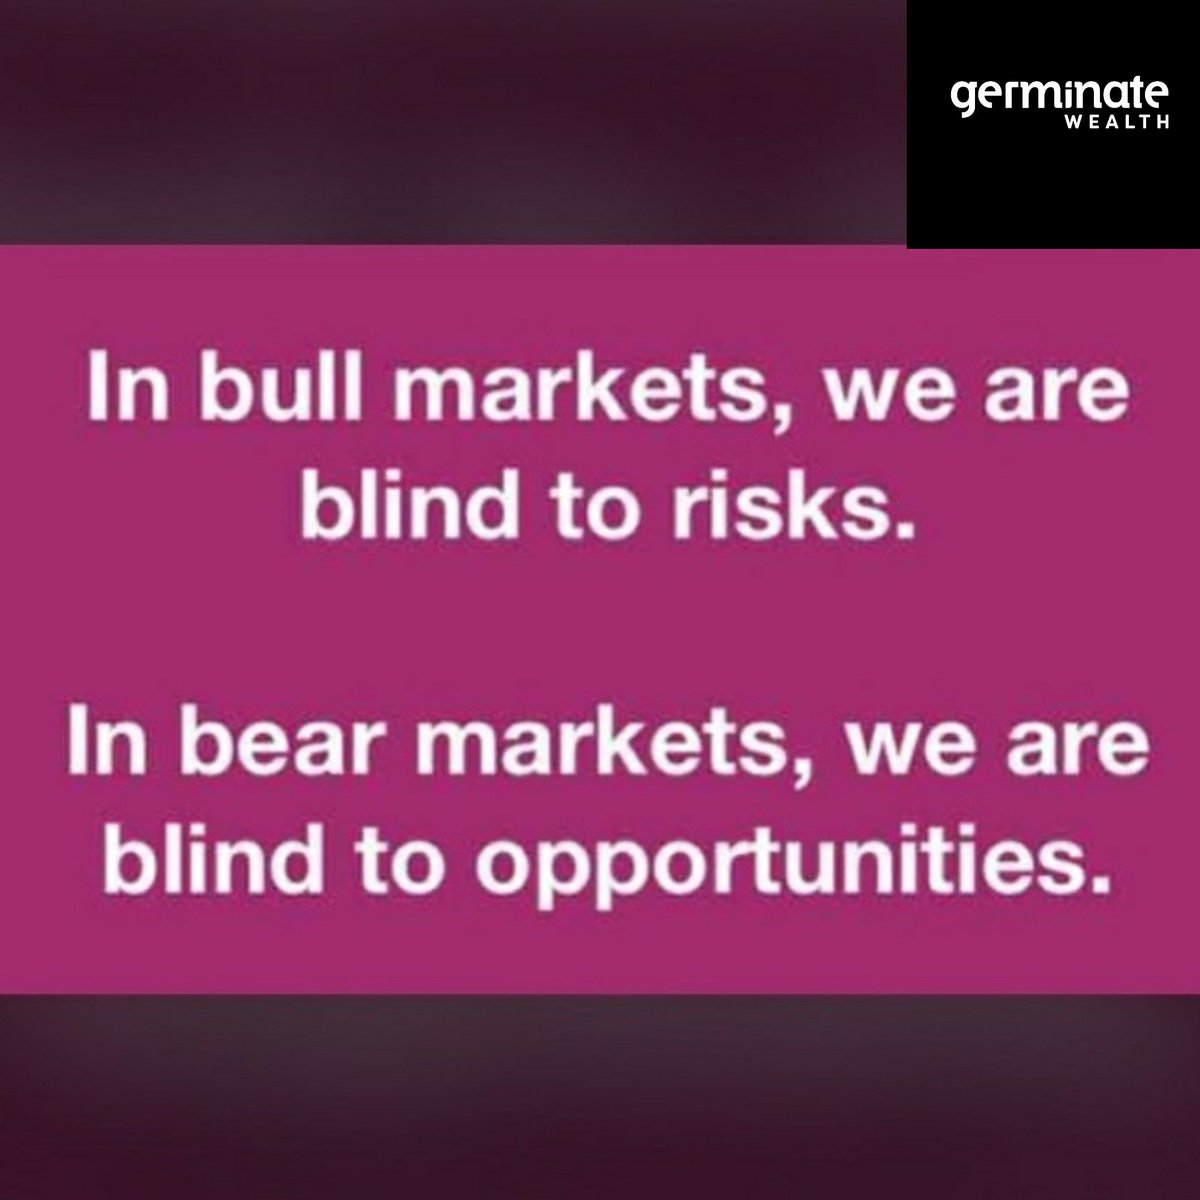 People react differently in a bull market and a bear market.  #germinatewealth #mutualfunds #investmentadvice #financialgoals #advice #investingtips pic.twitter.com/dDW8x4KYOq